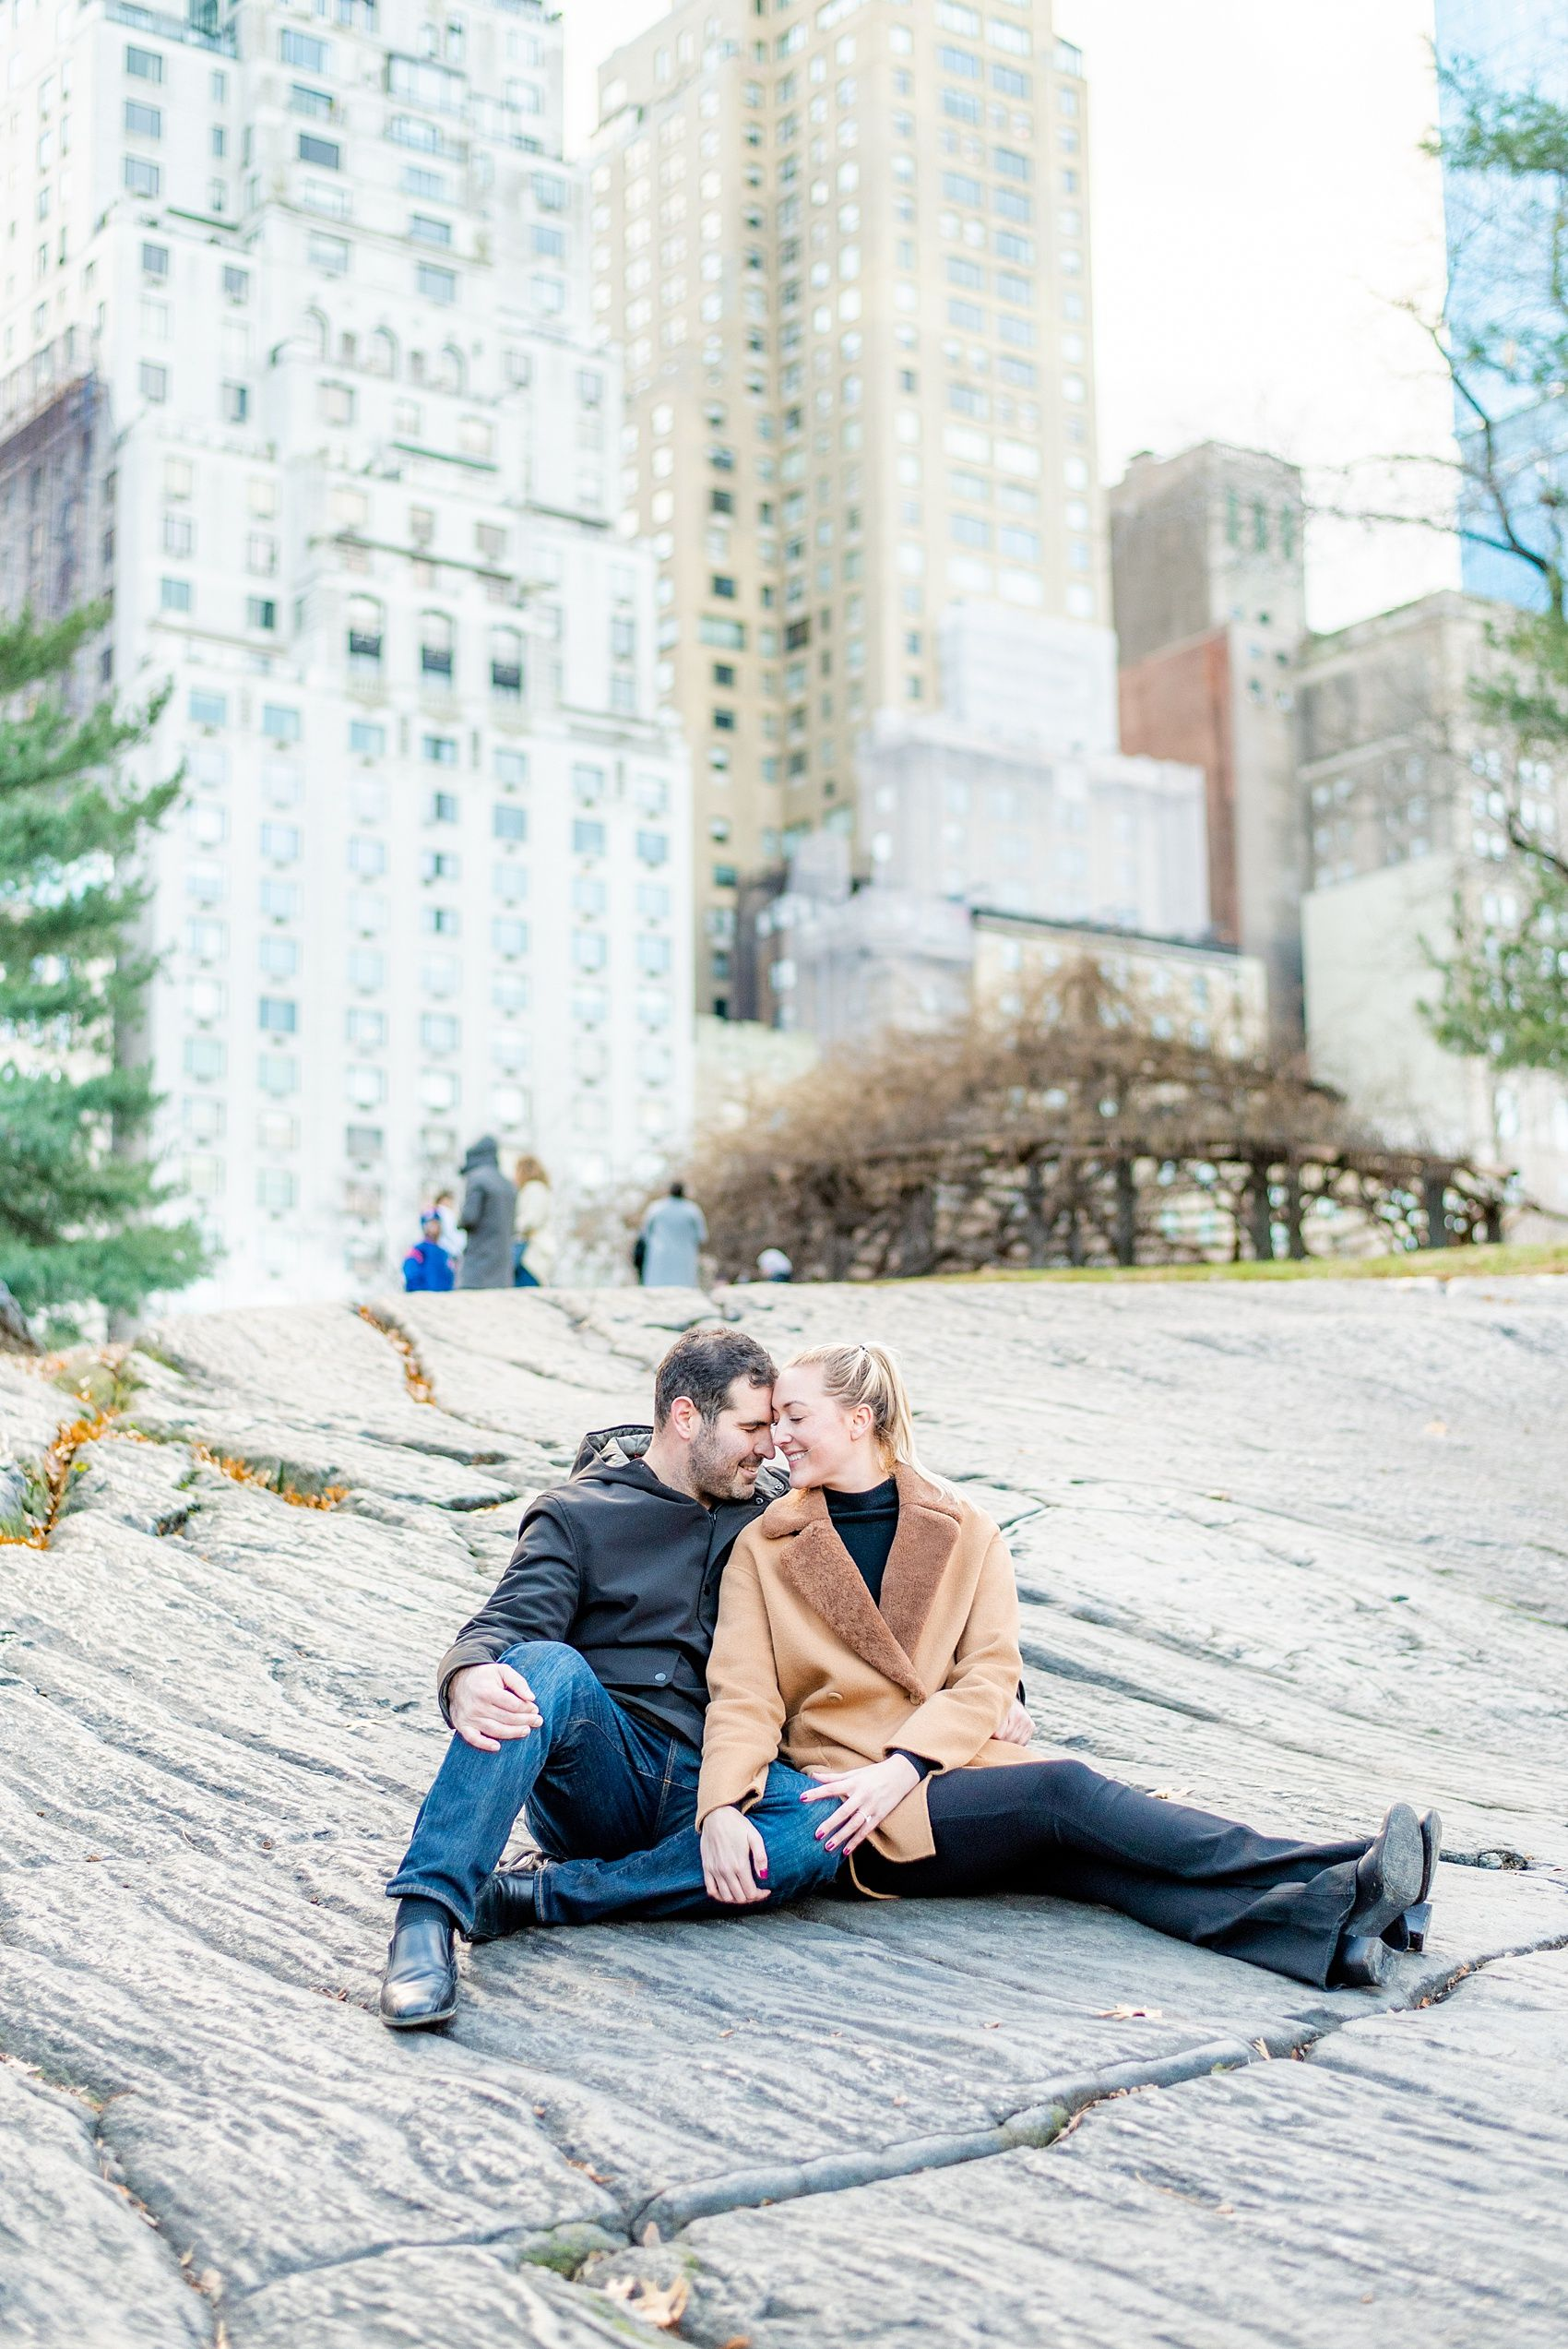 Nyc Proposal Ideas And Photographer Mikkel Paige Photography Proposal Photographer Photographer Photography